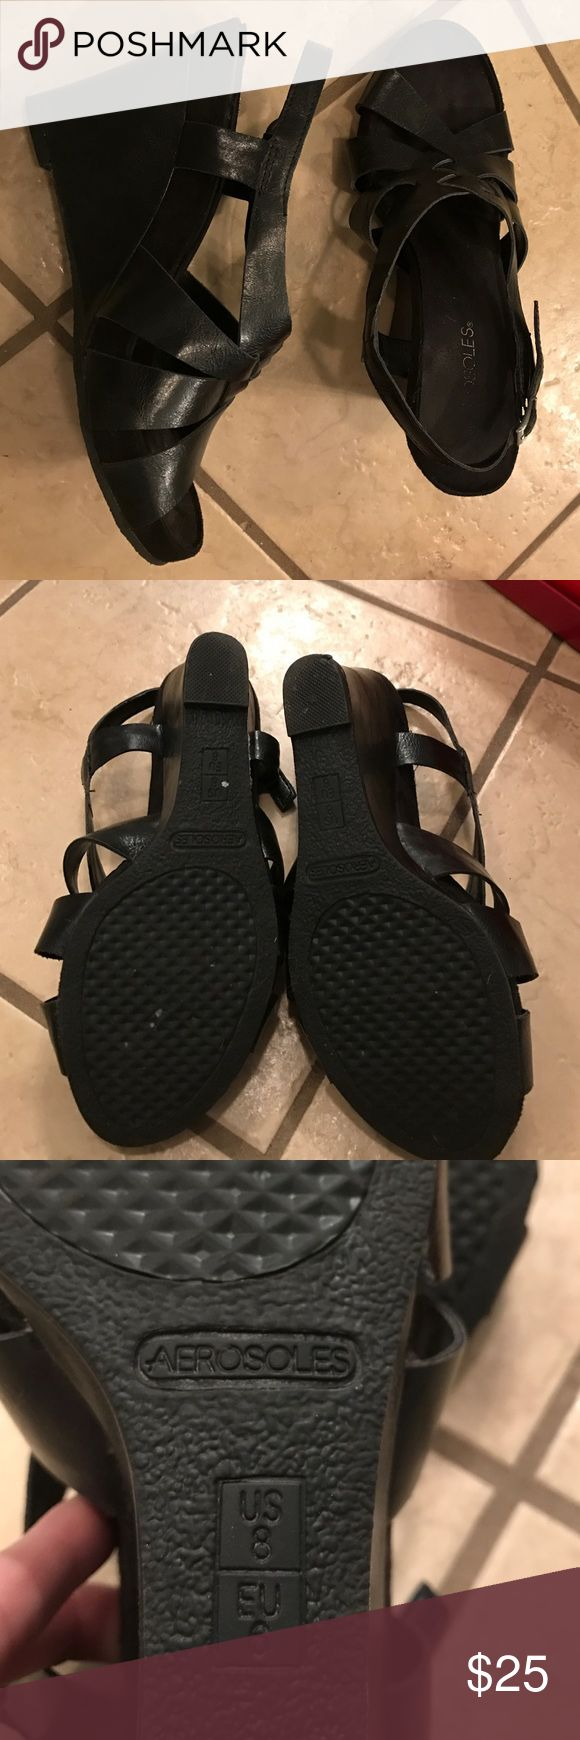 Black wedge dress shoes Black wedge Aerosole dress shoes. Very gently worn only a handful of times. No tears, ripes or marks. Smoke-free home. AEROSOLES Shoes Wedges